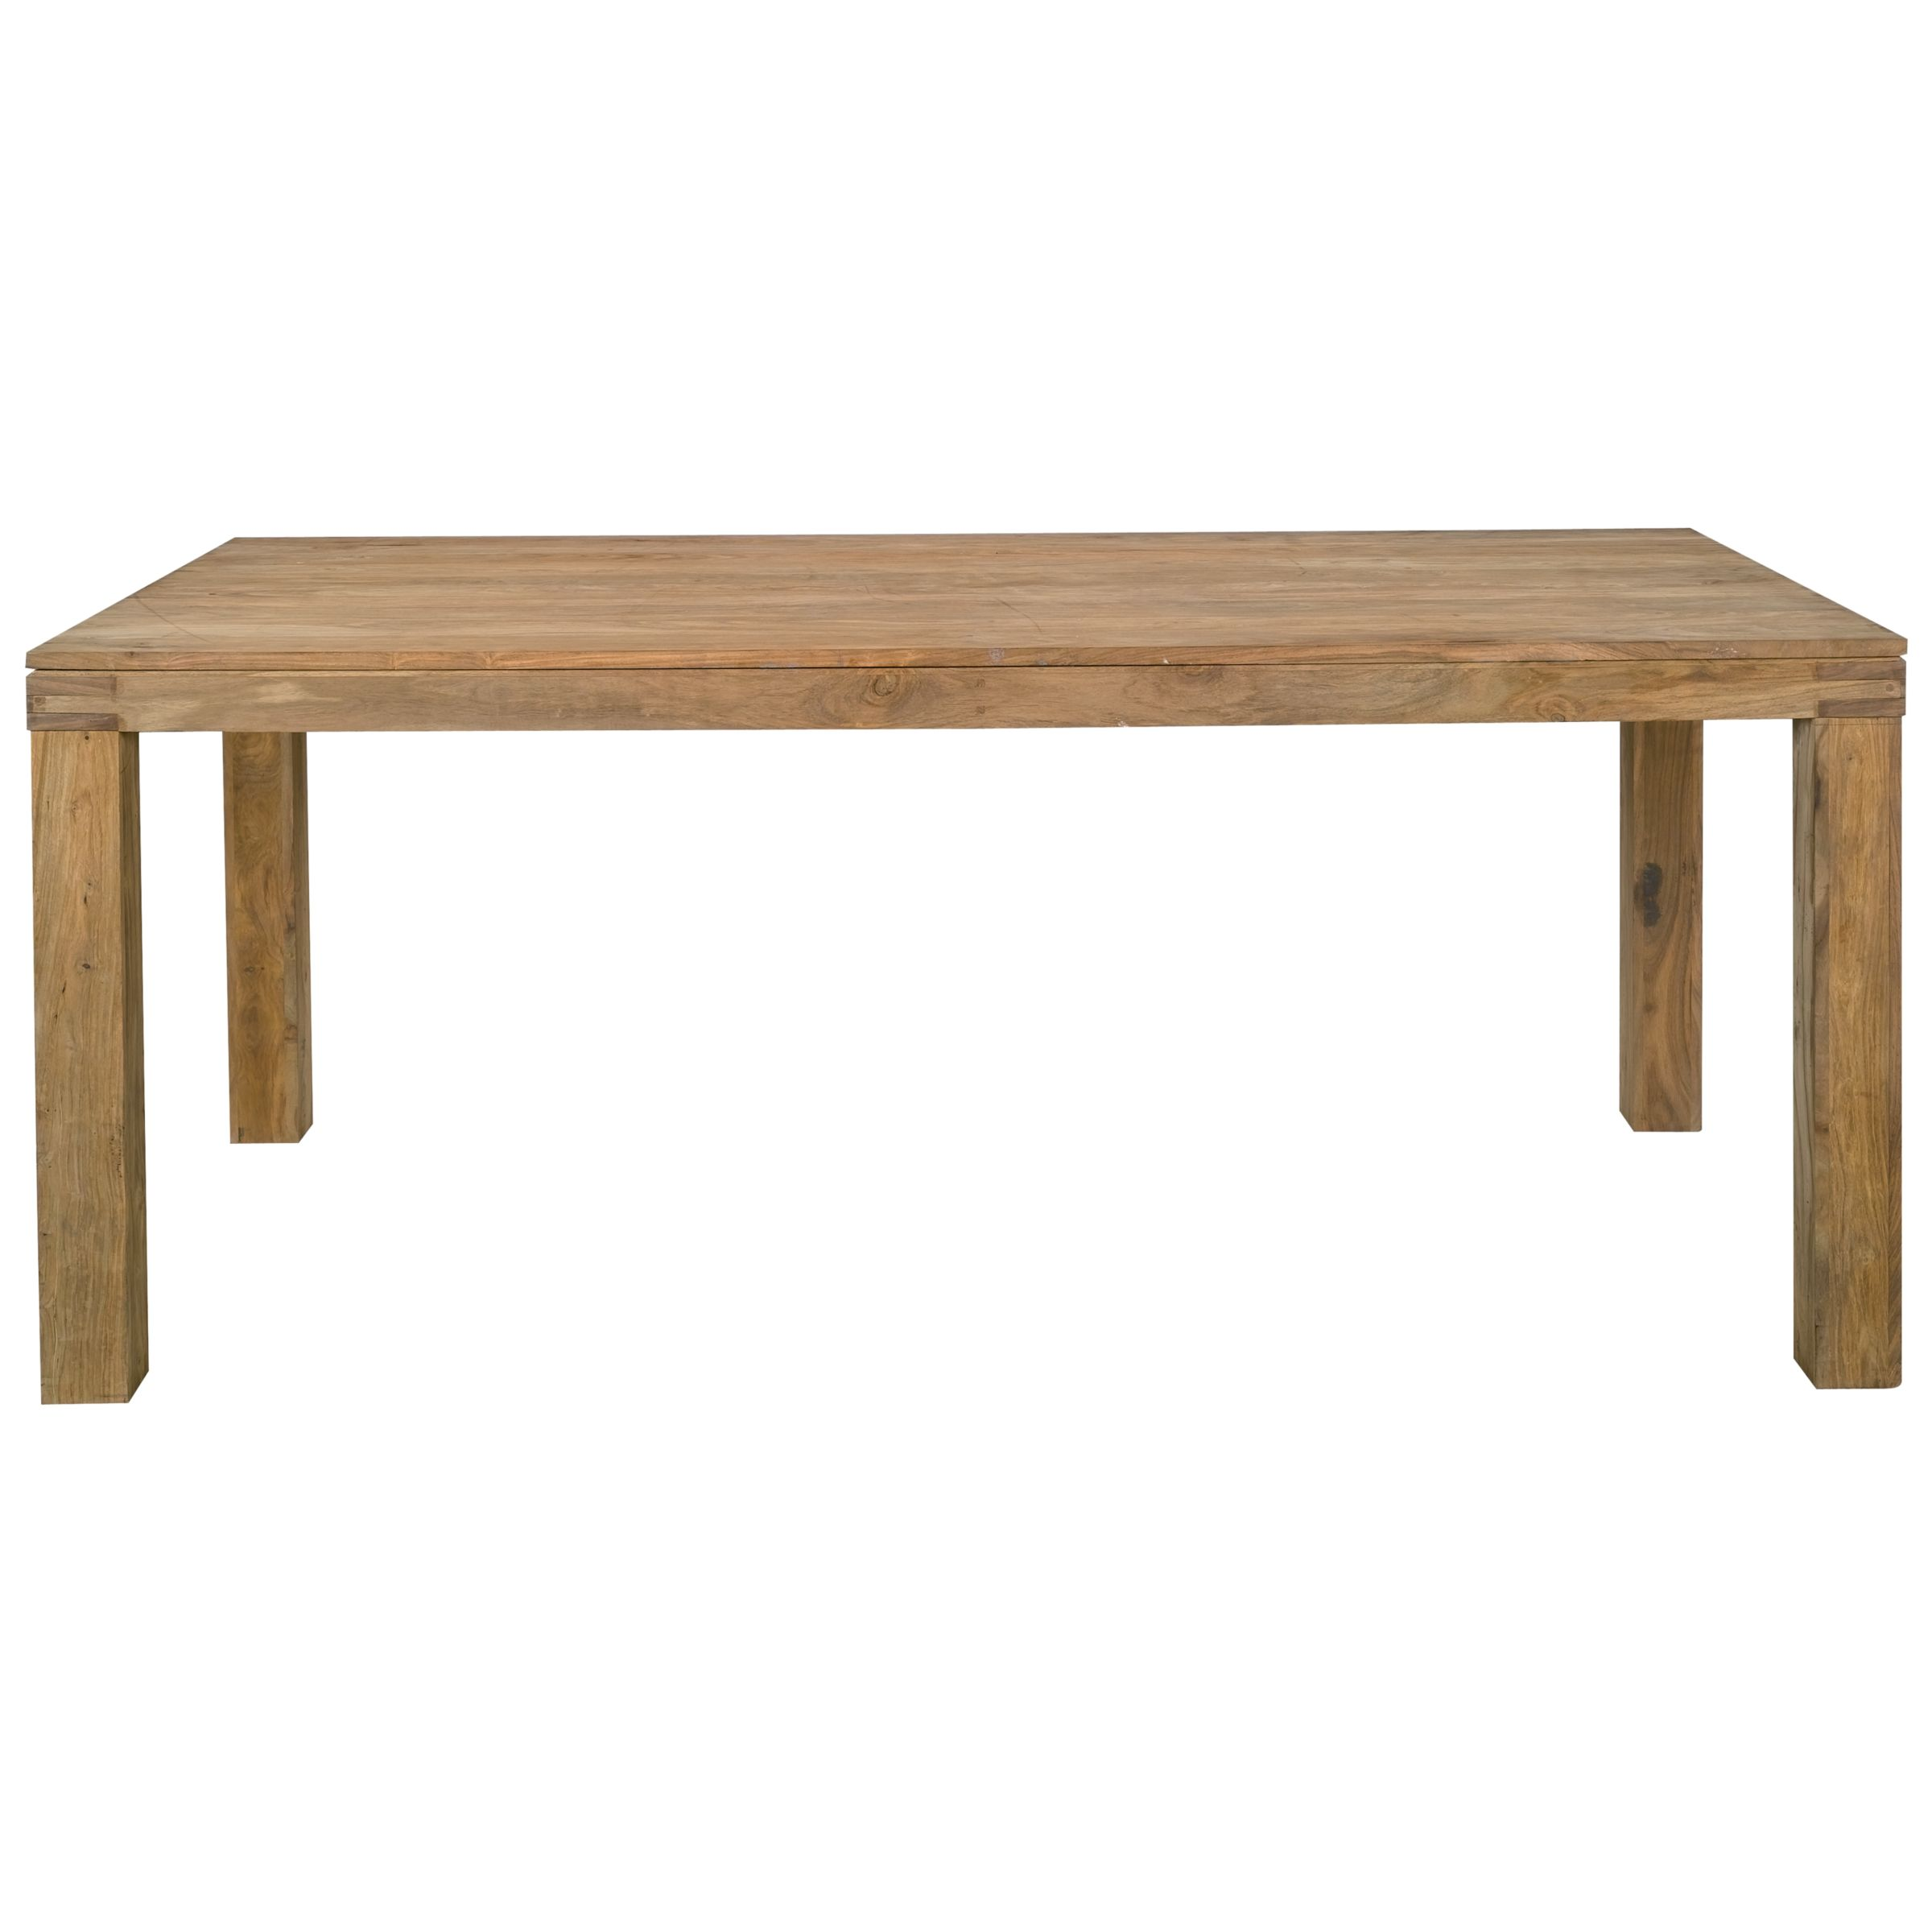 john lewis dining furniture reviews : 230626658 from www.comparestoreprices.co.uk size 2400 x 2400 jpeg 160kB